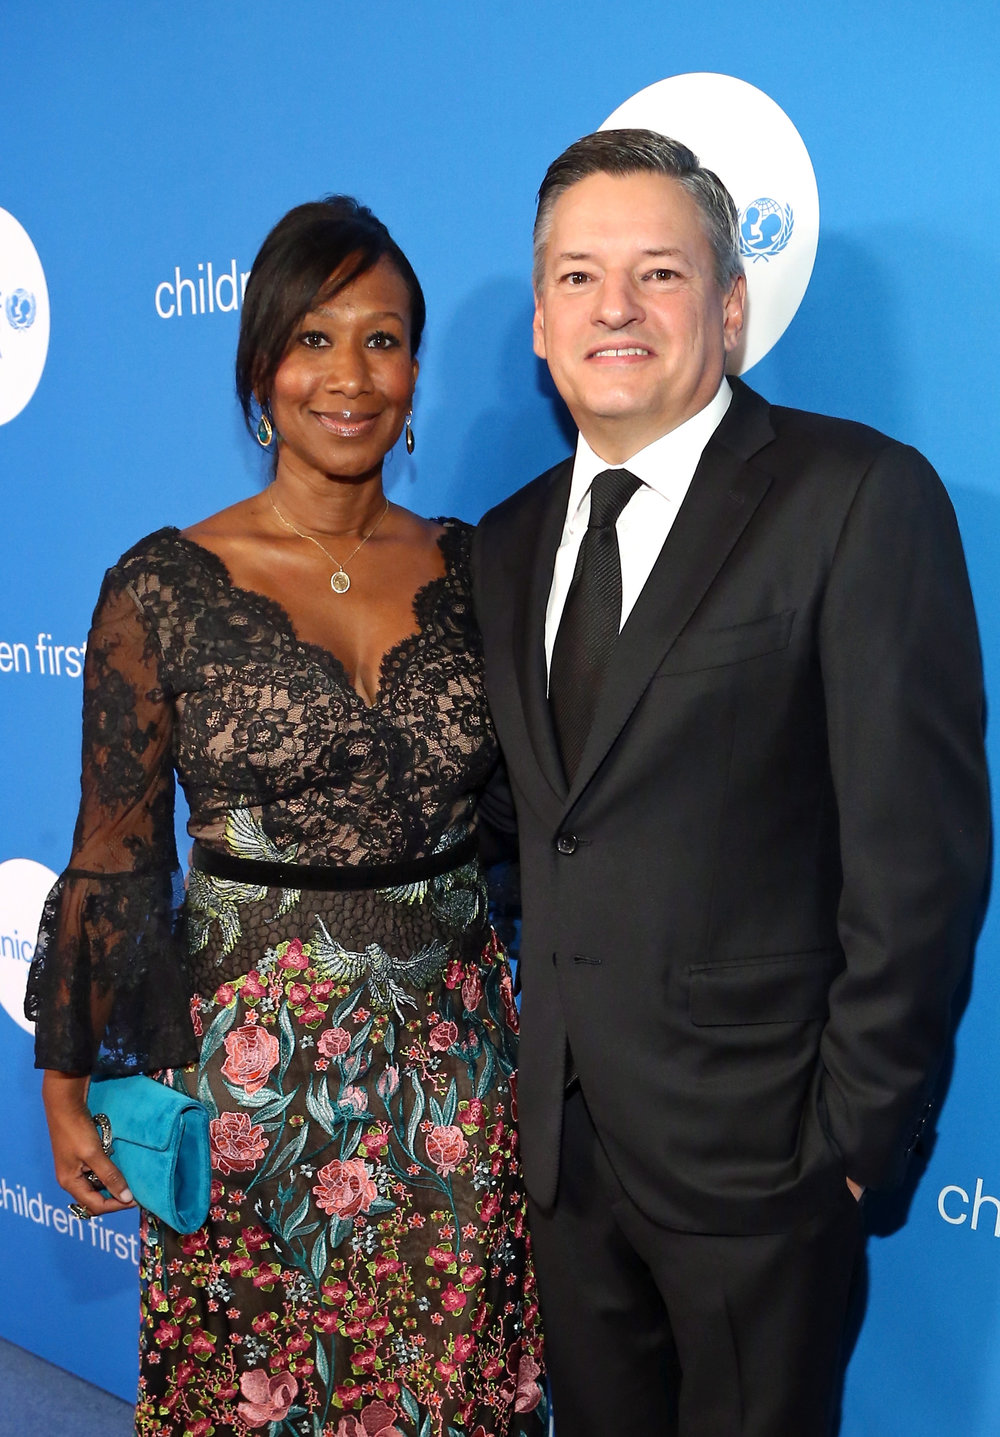 Spirt of Compassion Award Recipients Former U.S. Ambassador Nicole Avant (L) and Chief Content Officer for Netflix Ted Sarandos at the Seventh Biennial UNICEF Ball: Los Angeles on April 14, 2018. (Photo by Tommaso Boddi/Getty Images for UNICEF USA)